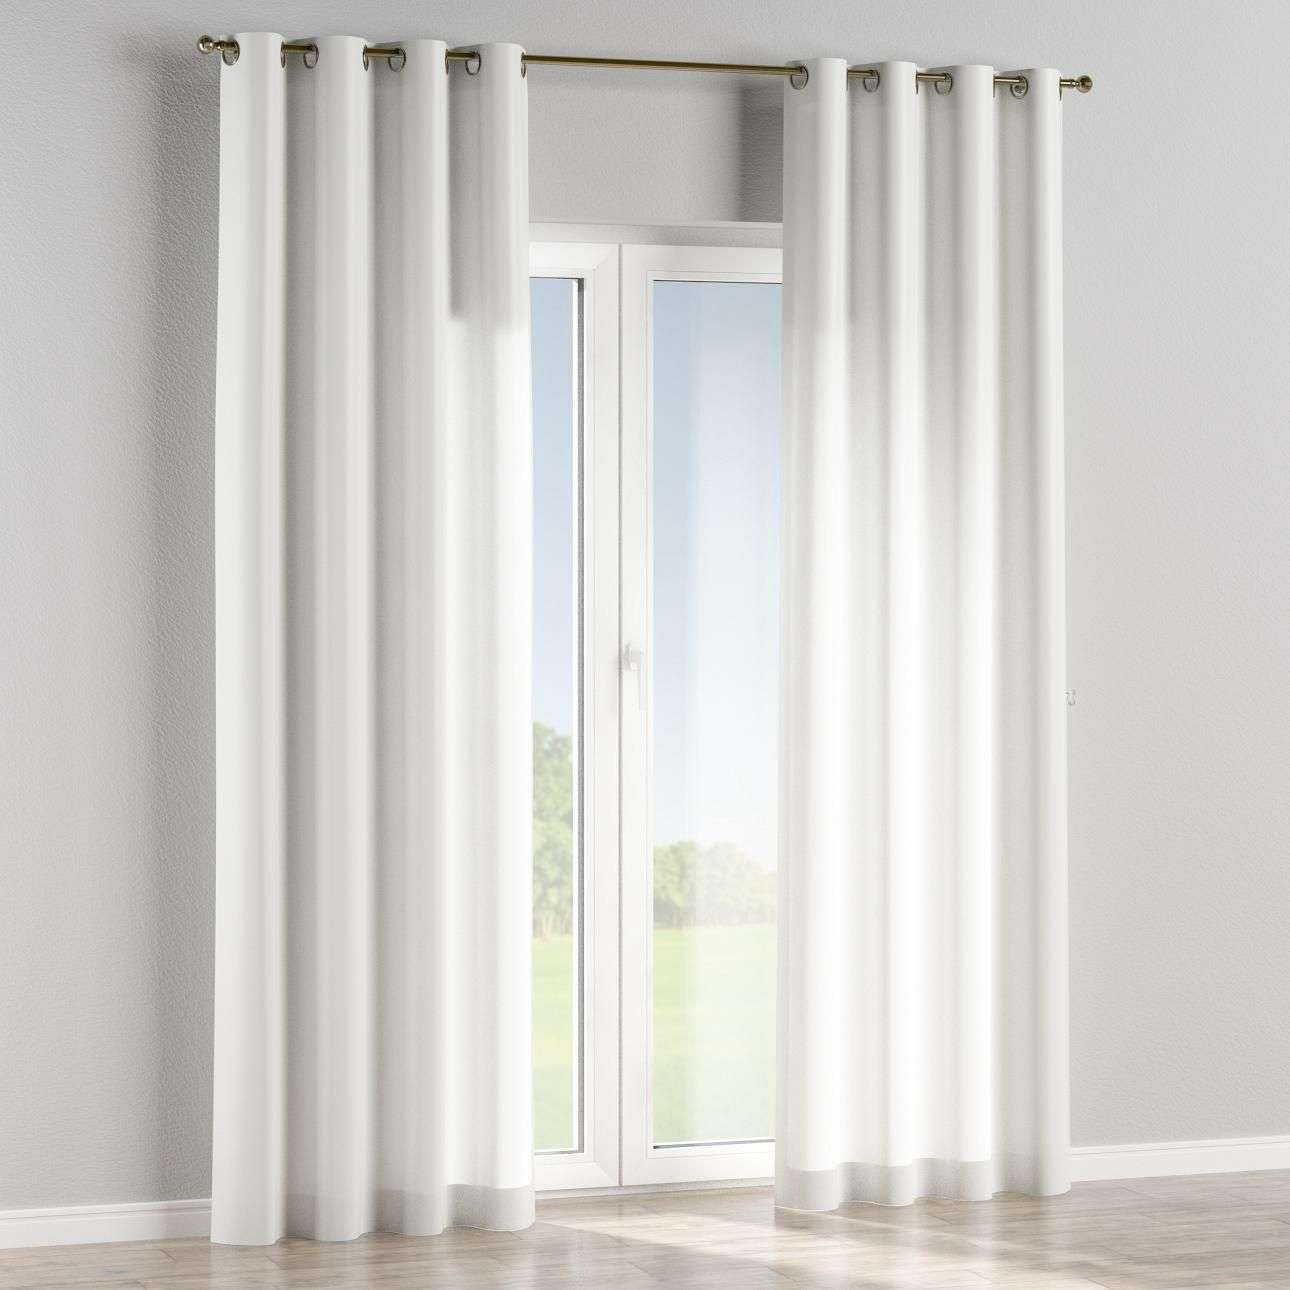 Eyelet curtains in collection Freestyle, fabric: 150-05